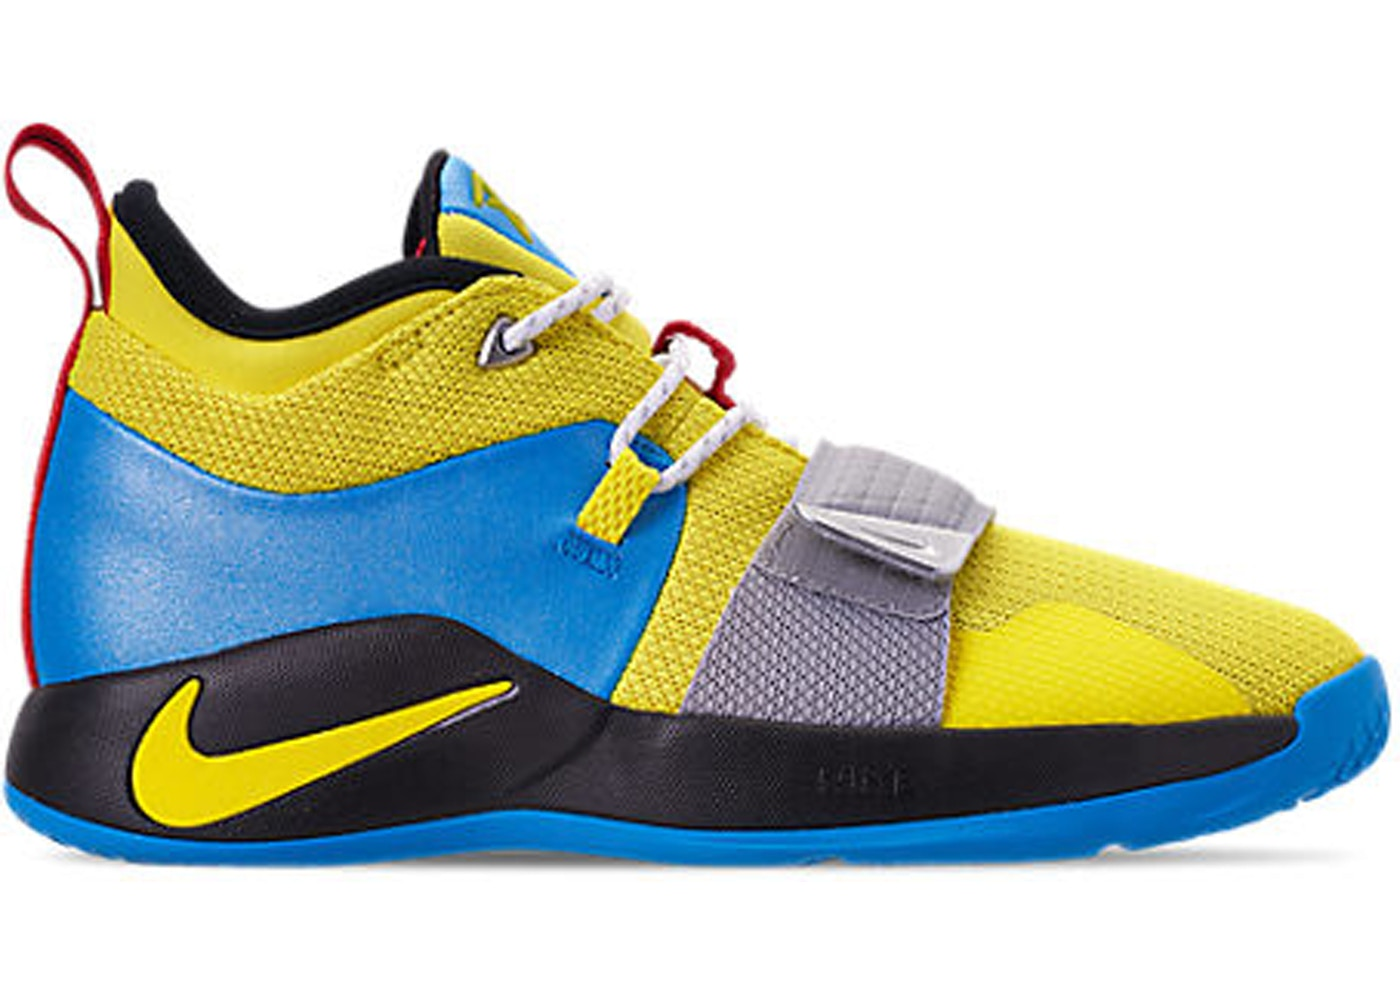 hot sales 8dc8a 20729 Nike PG 2.5 Opti Yellow Blue Hero (GS)